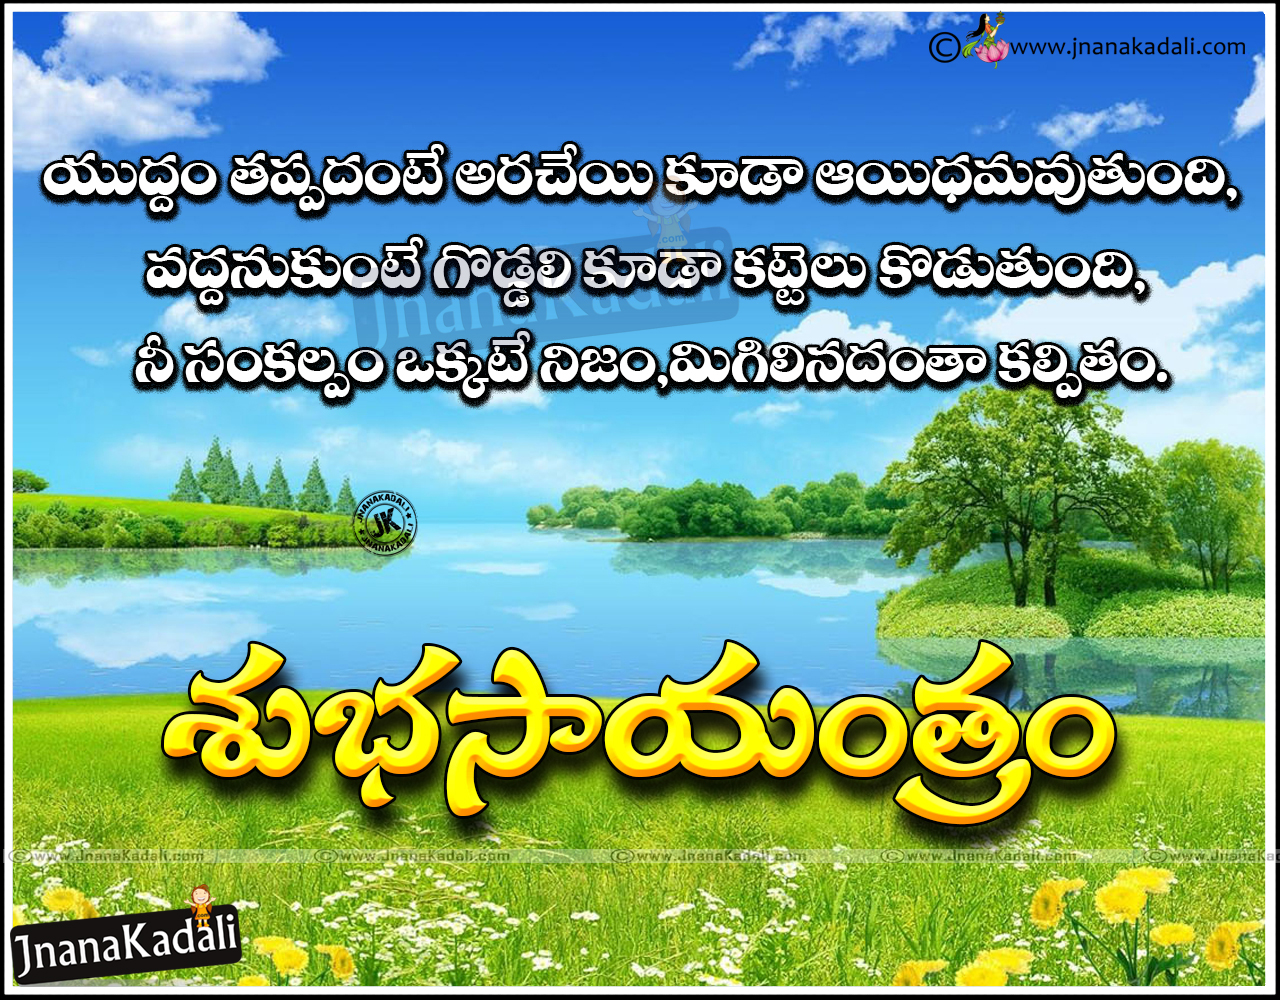 Telugu Goal Setting Quotes And Good Evening Wishes Jnana Kadali